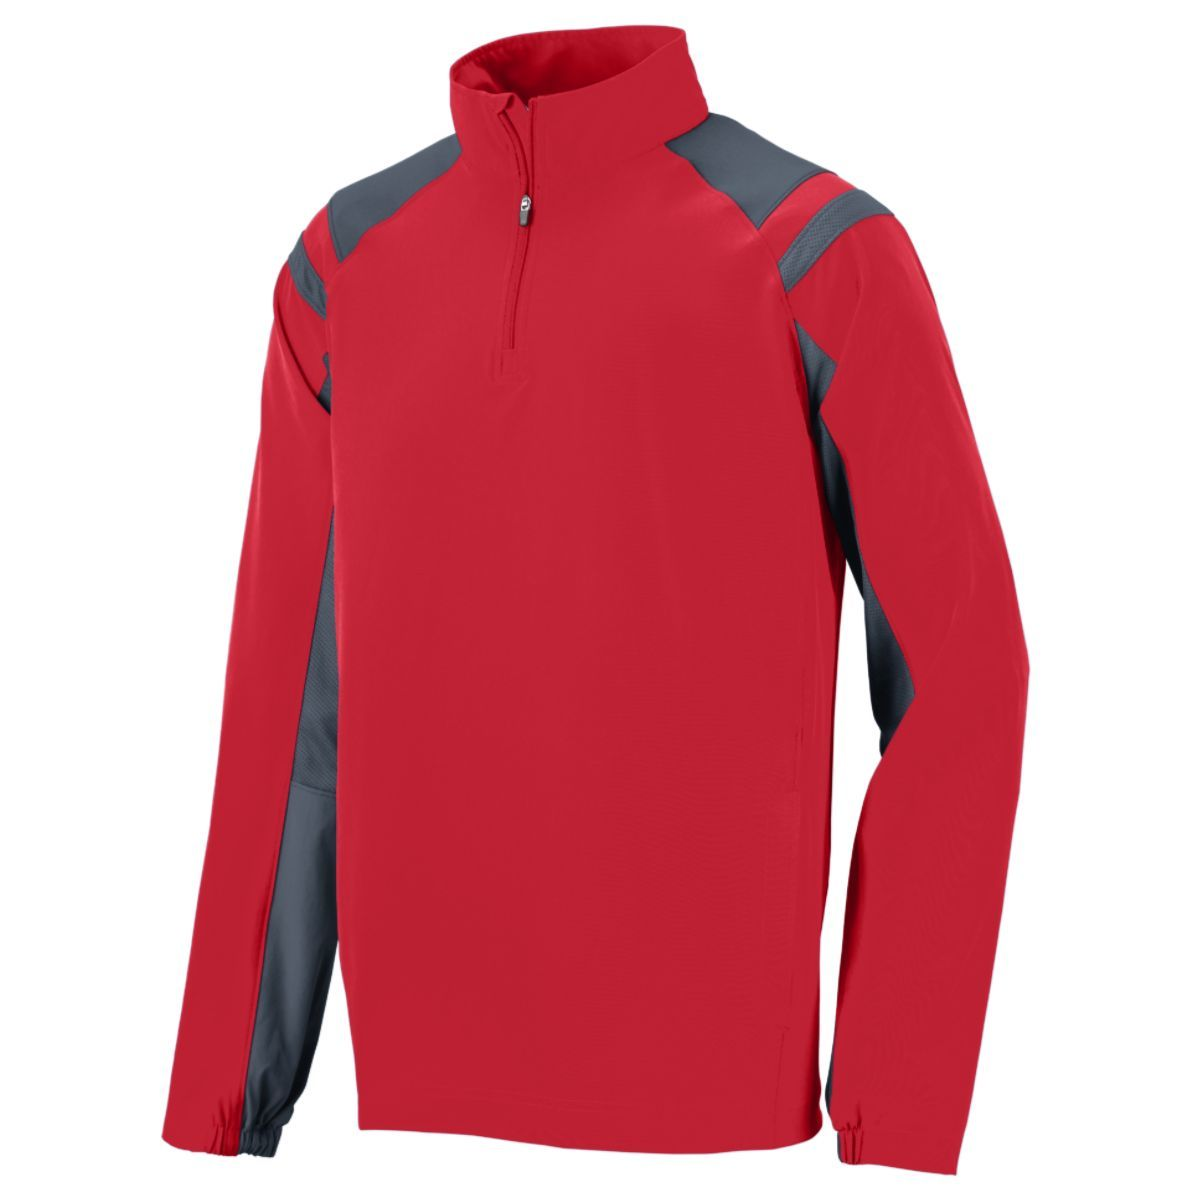 Doppler Pullover - RED/GRAPHITE